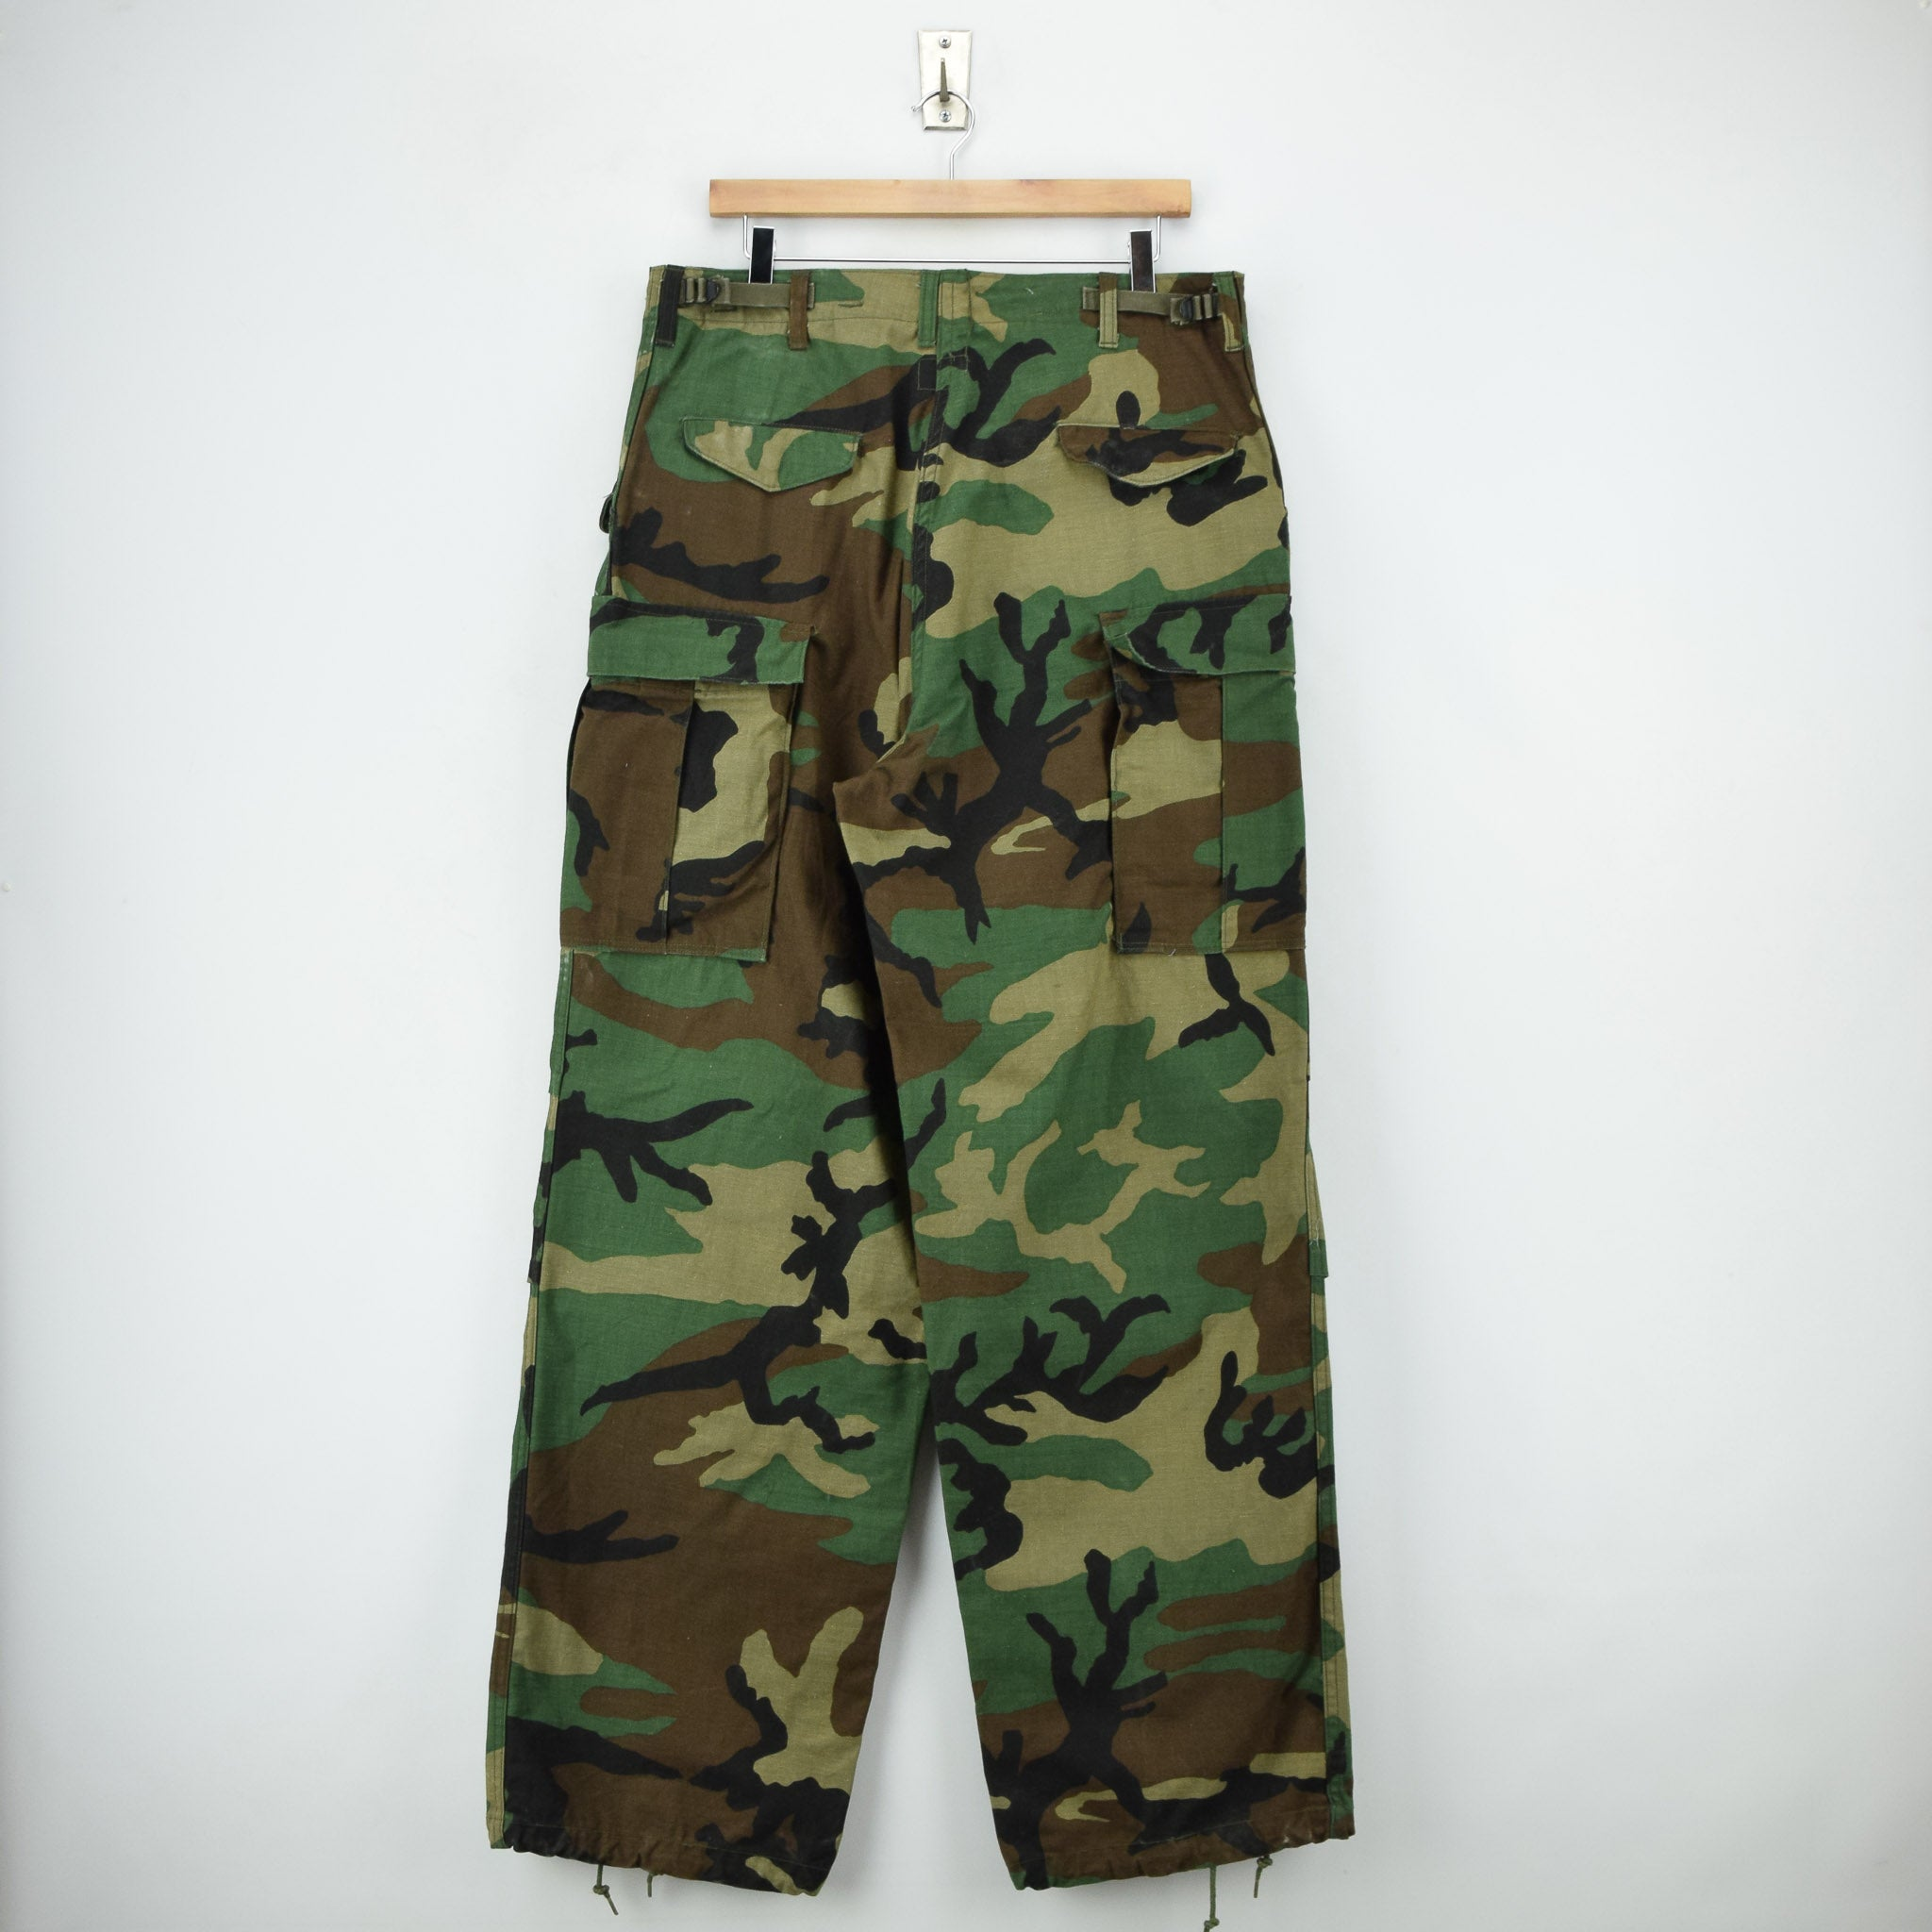 Vintage 80s US Army Camo Cold Weather Military Combat Field Trousers M Long back